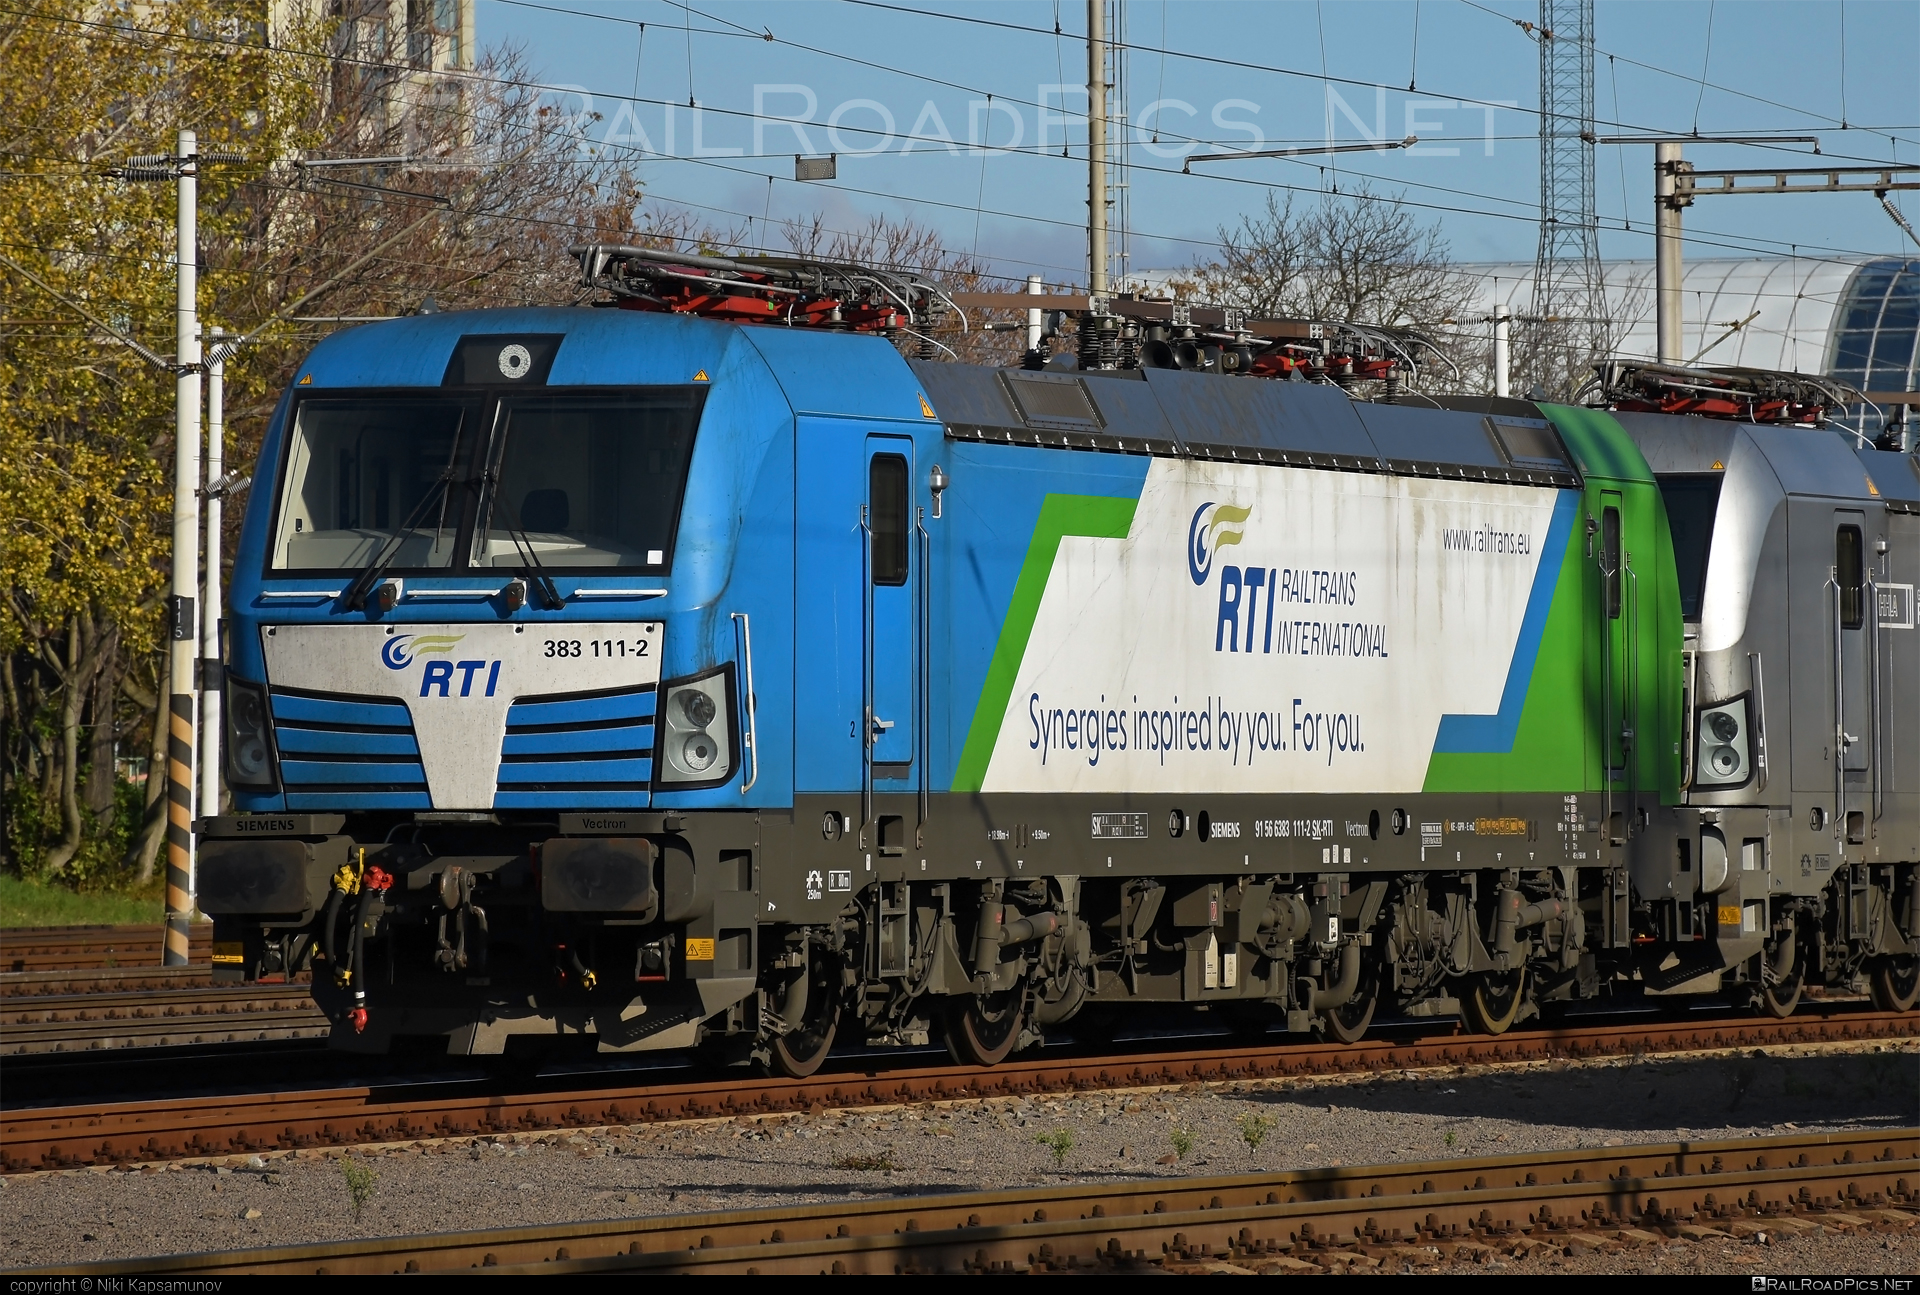 Siemens Vectron MS - 383 111-2 operated by Railtrans International, s.r.o #RailtransInternational #rti #siemens #siemensvectron #siemensvectronms #vectron #vectronms